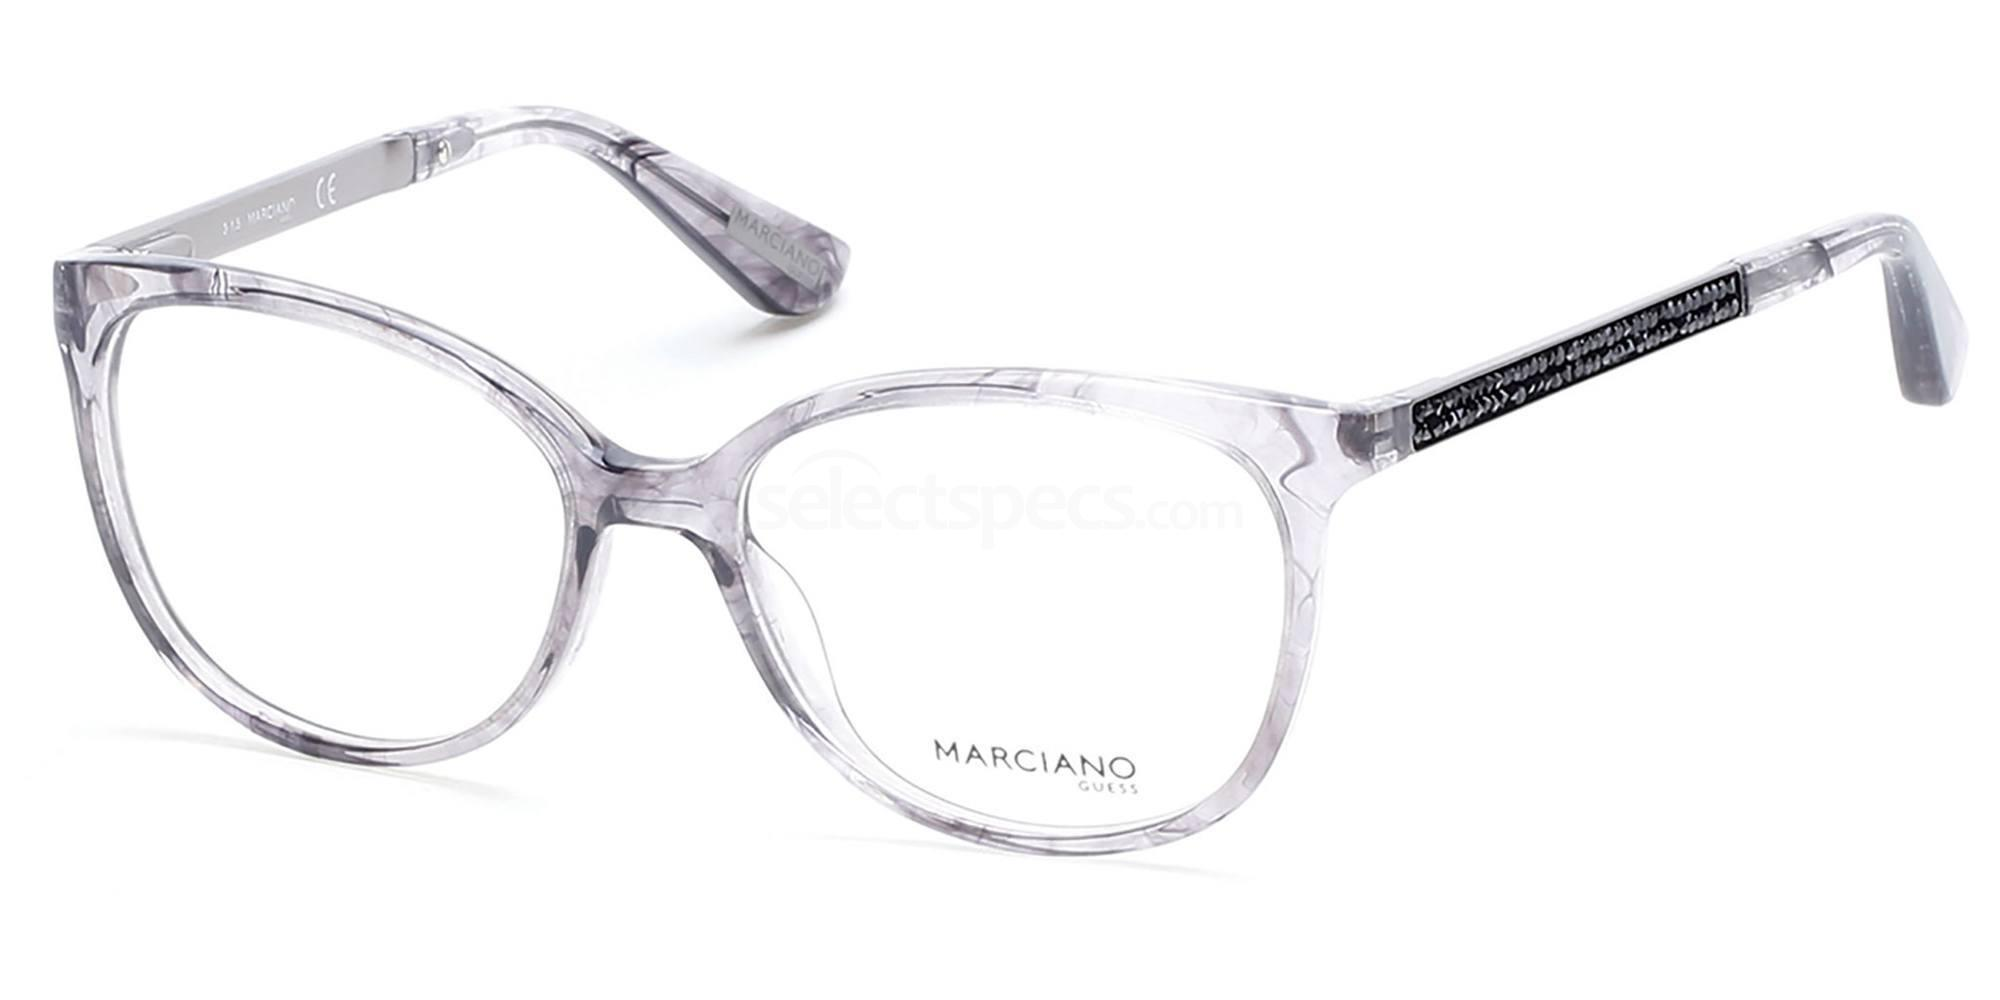 020 GM0282 Glasses, Guess by Marciano